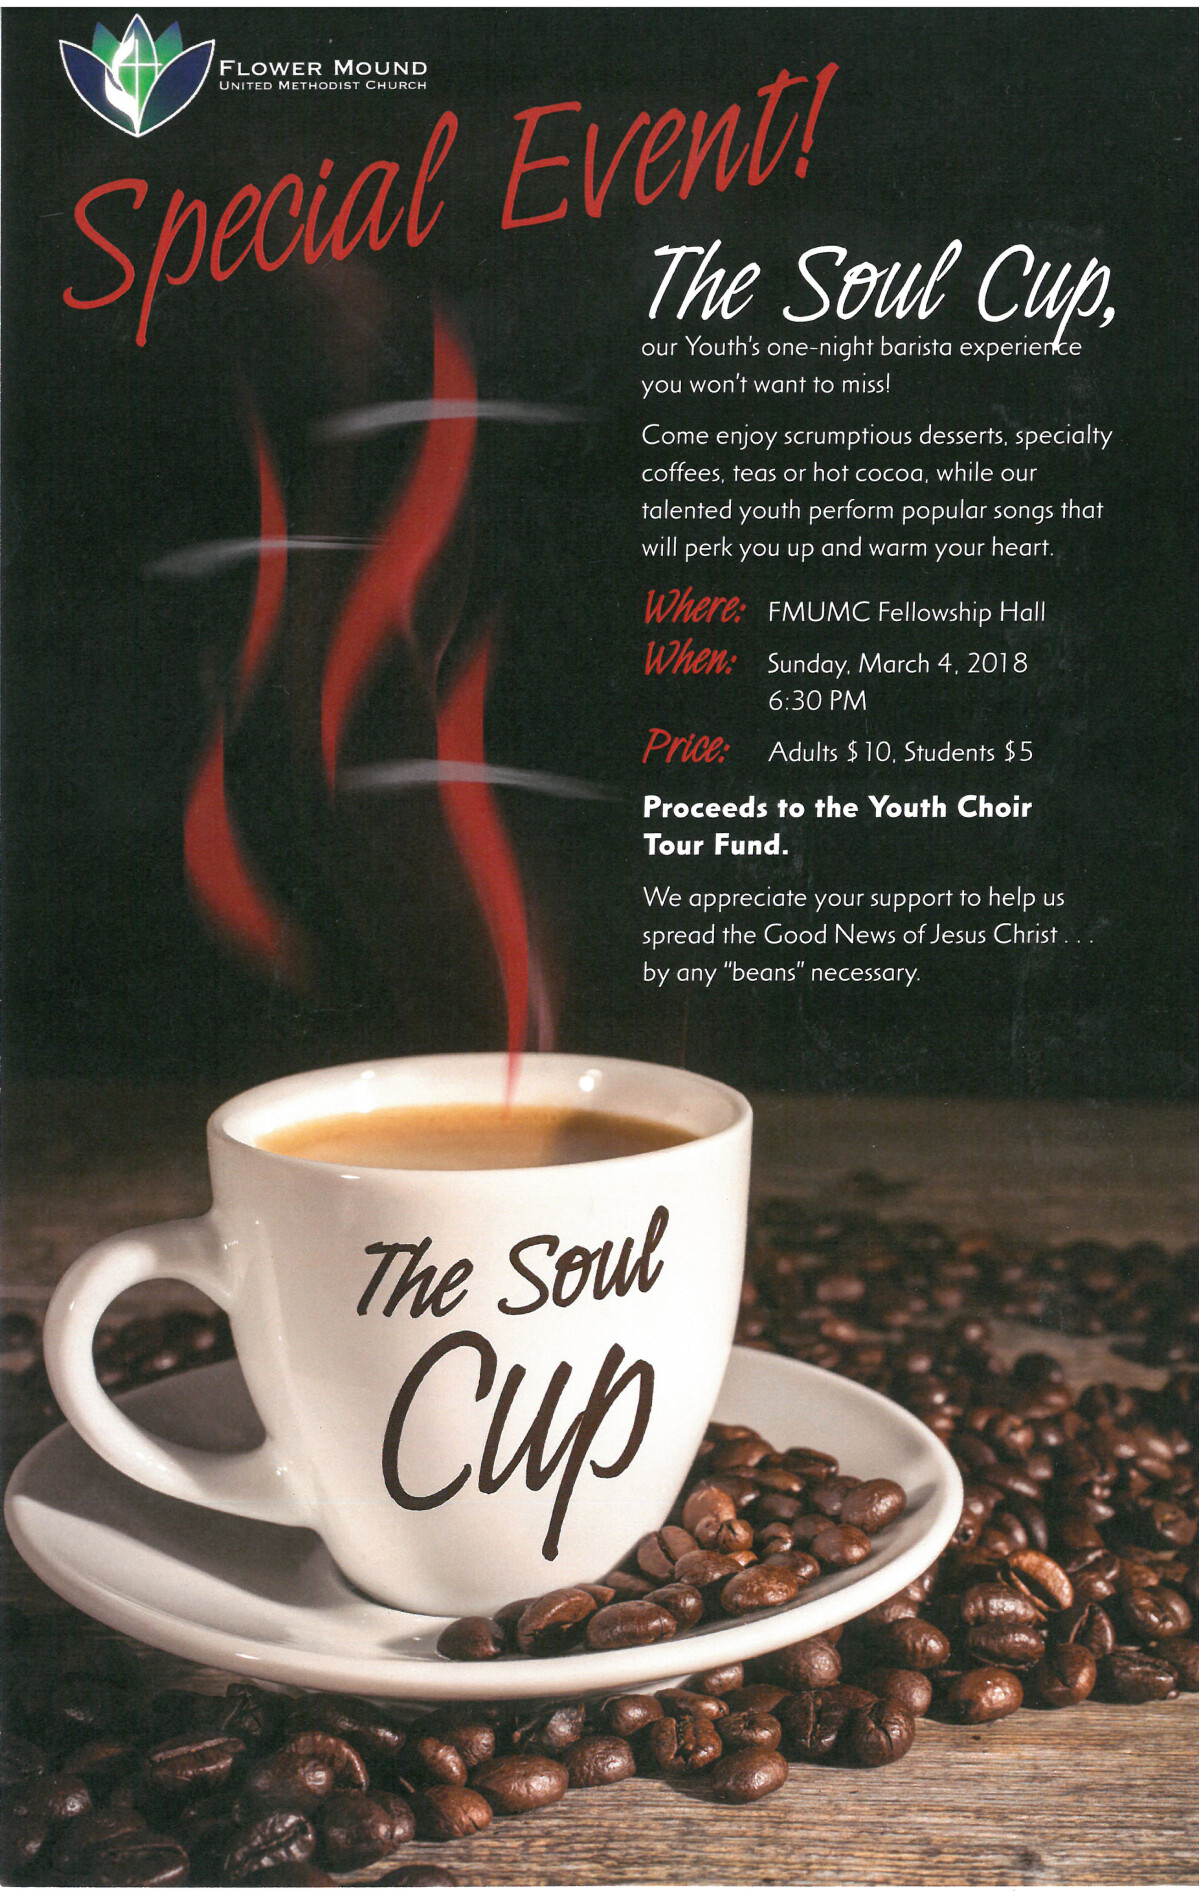 The Soul Cup